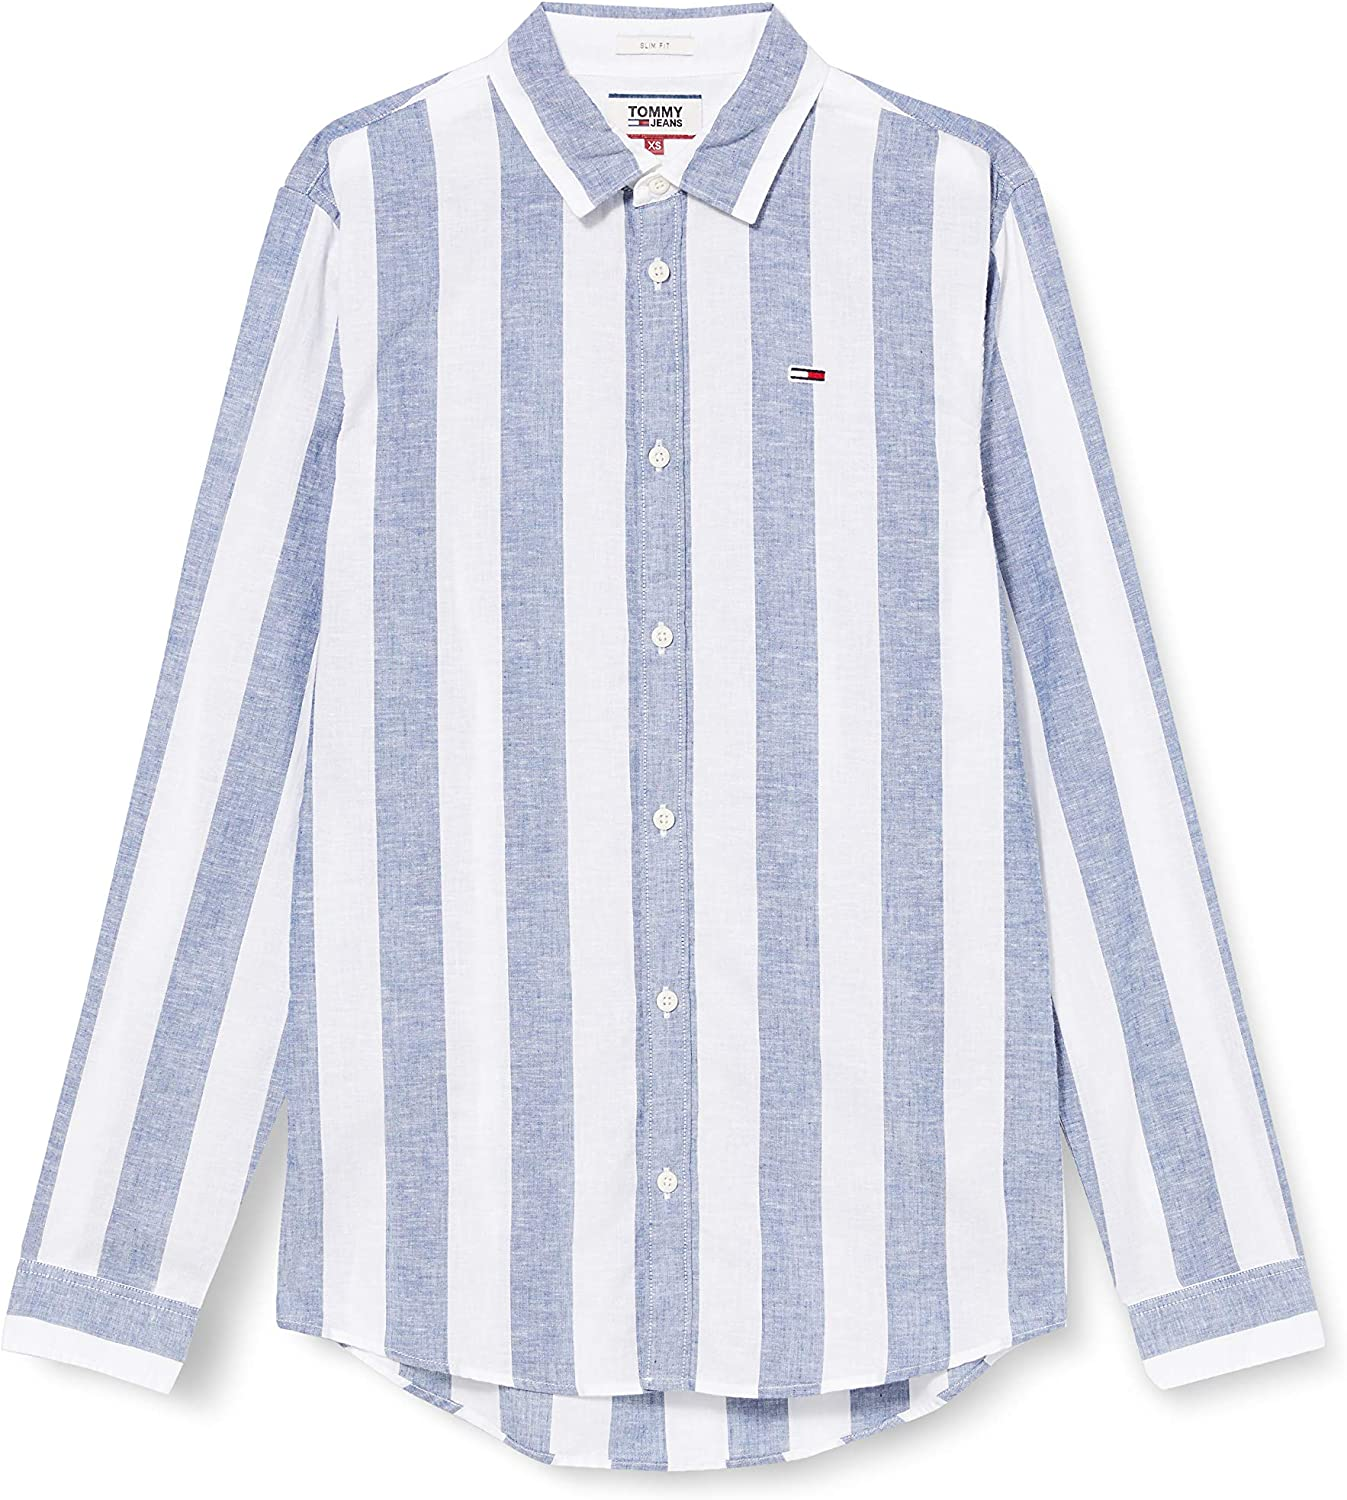 Tommy Hilfiger TJM Longsleeve Linen Blend Shirt Camisa para Hombre: Amazon.es: Ropa y accesorios